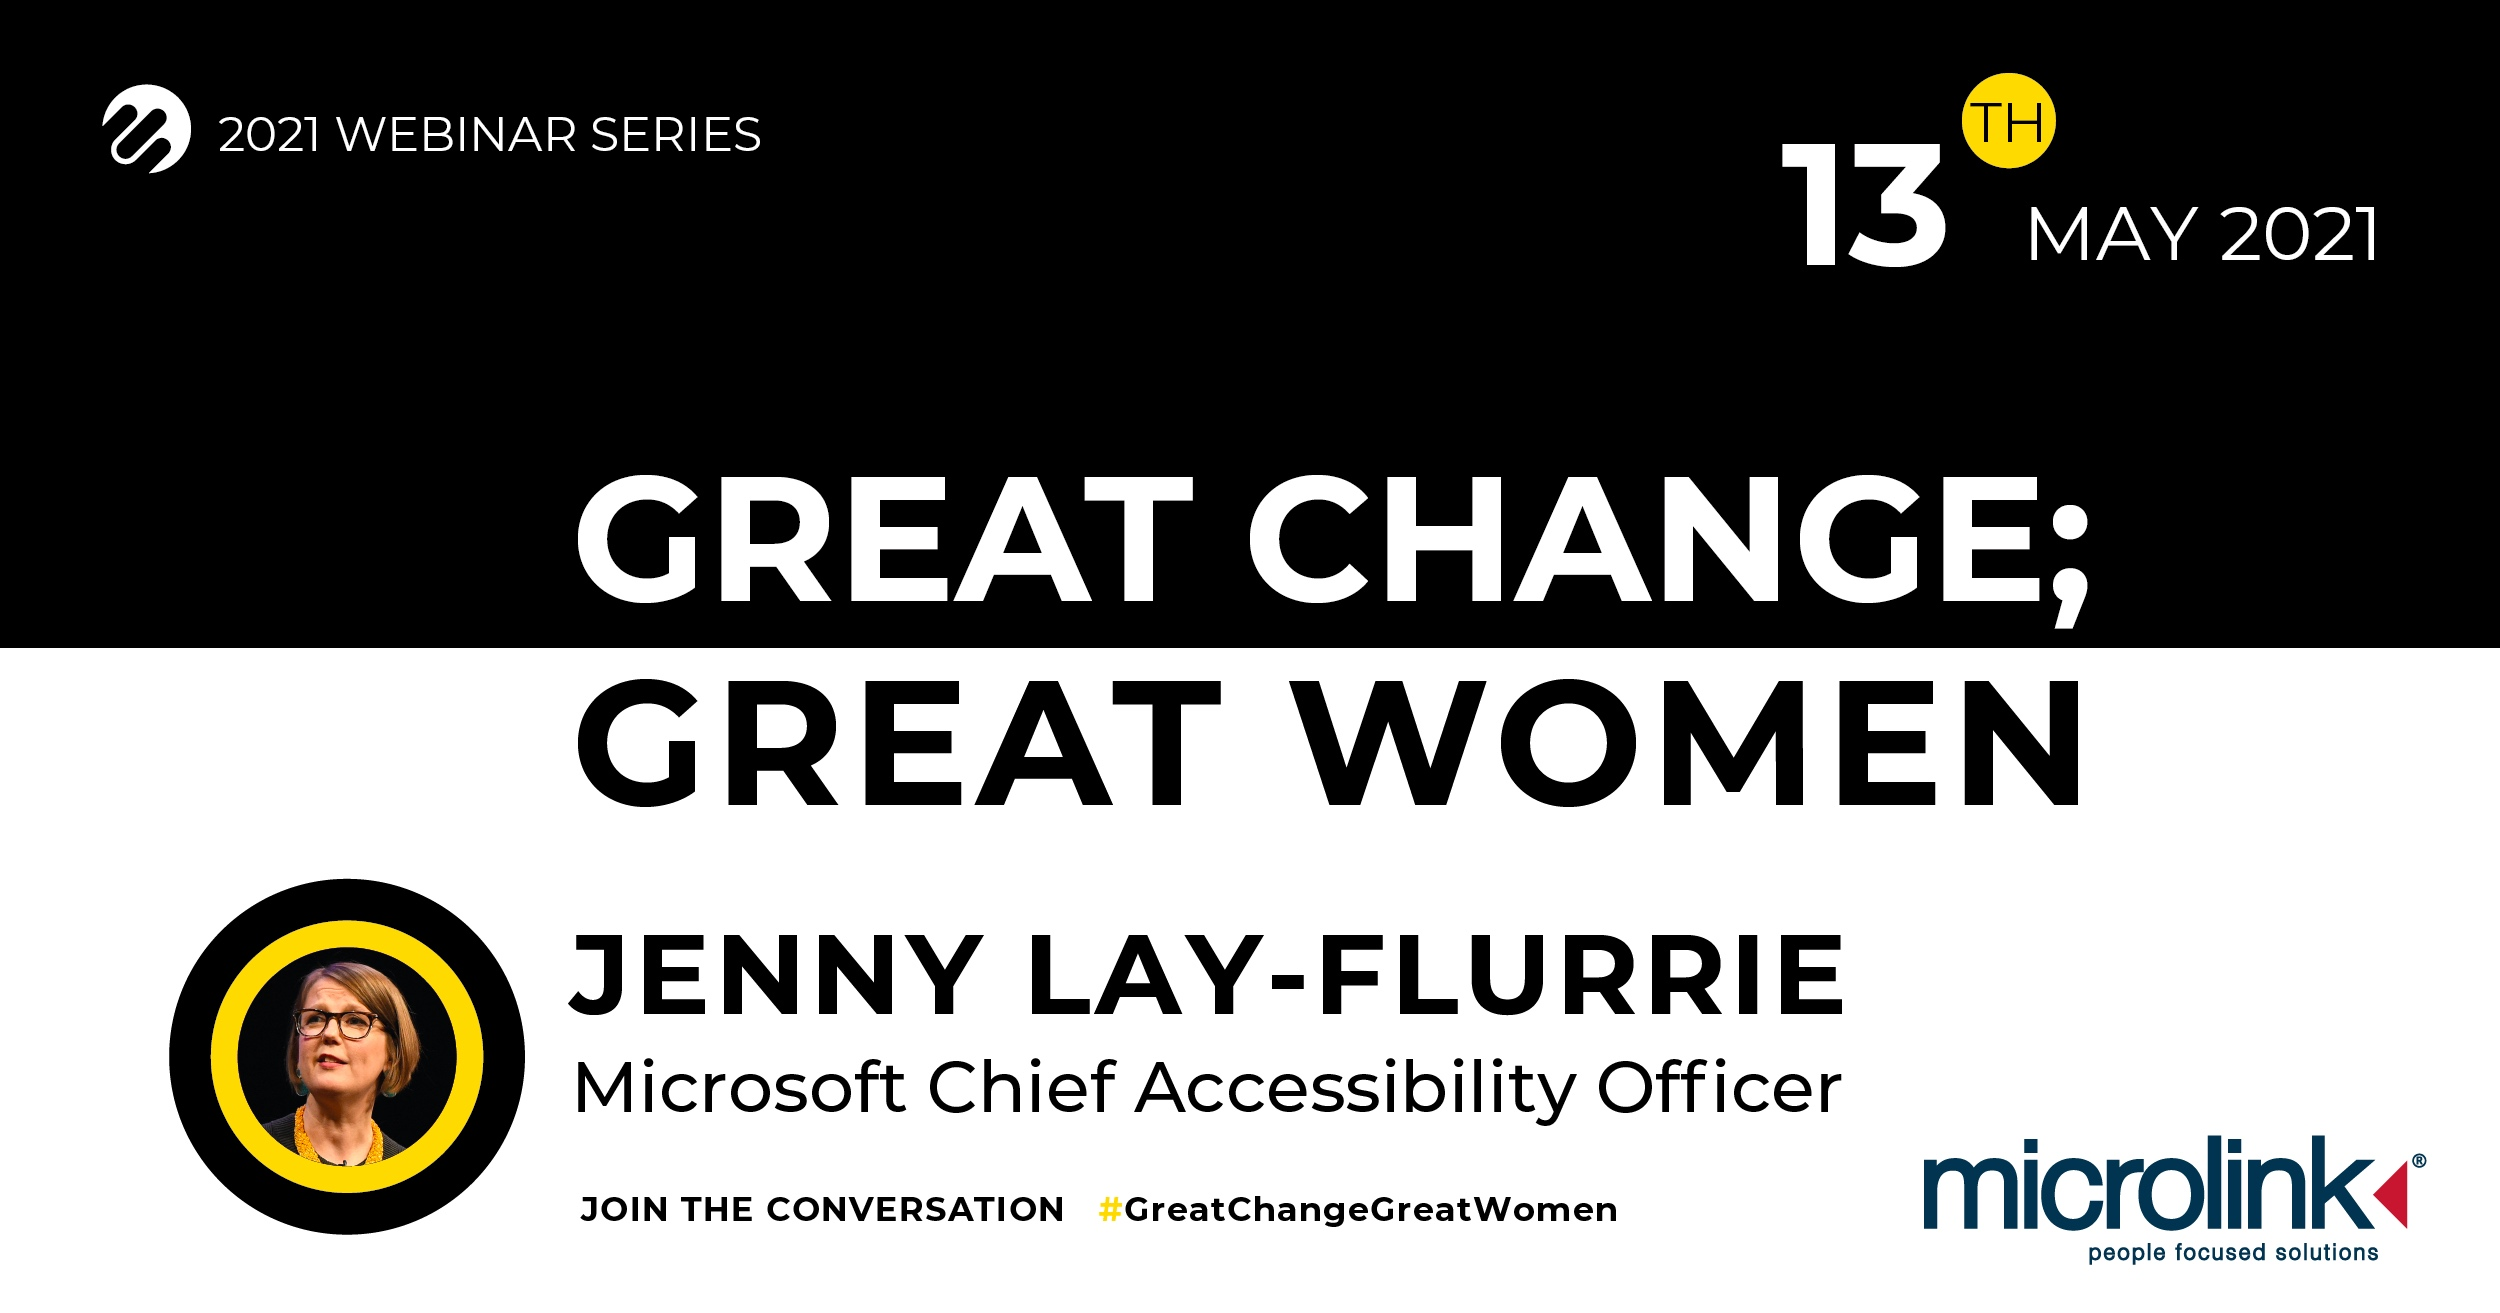 Great Change; Great Women, Microlink event with Jenny Lay-Flurrie